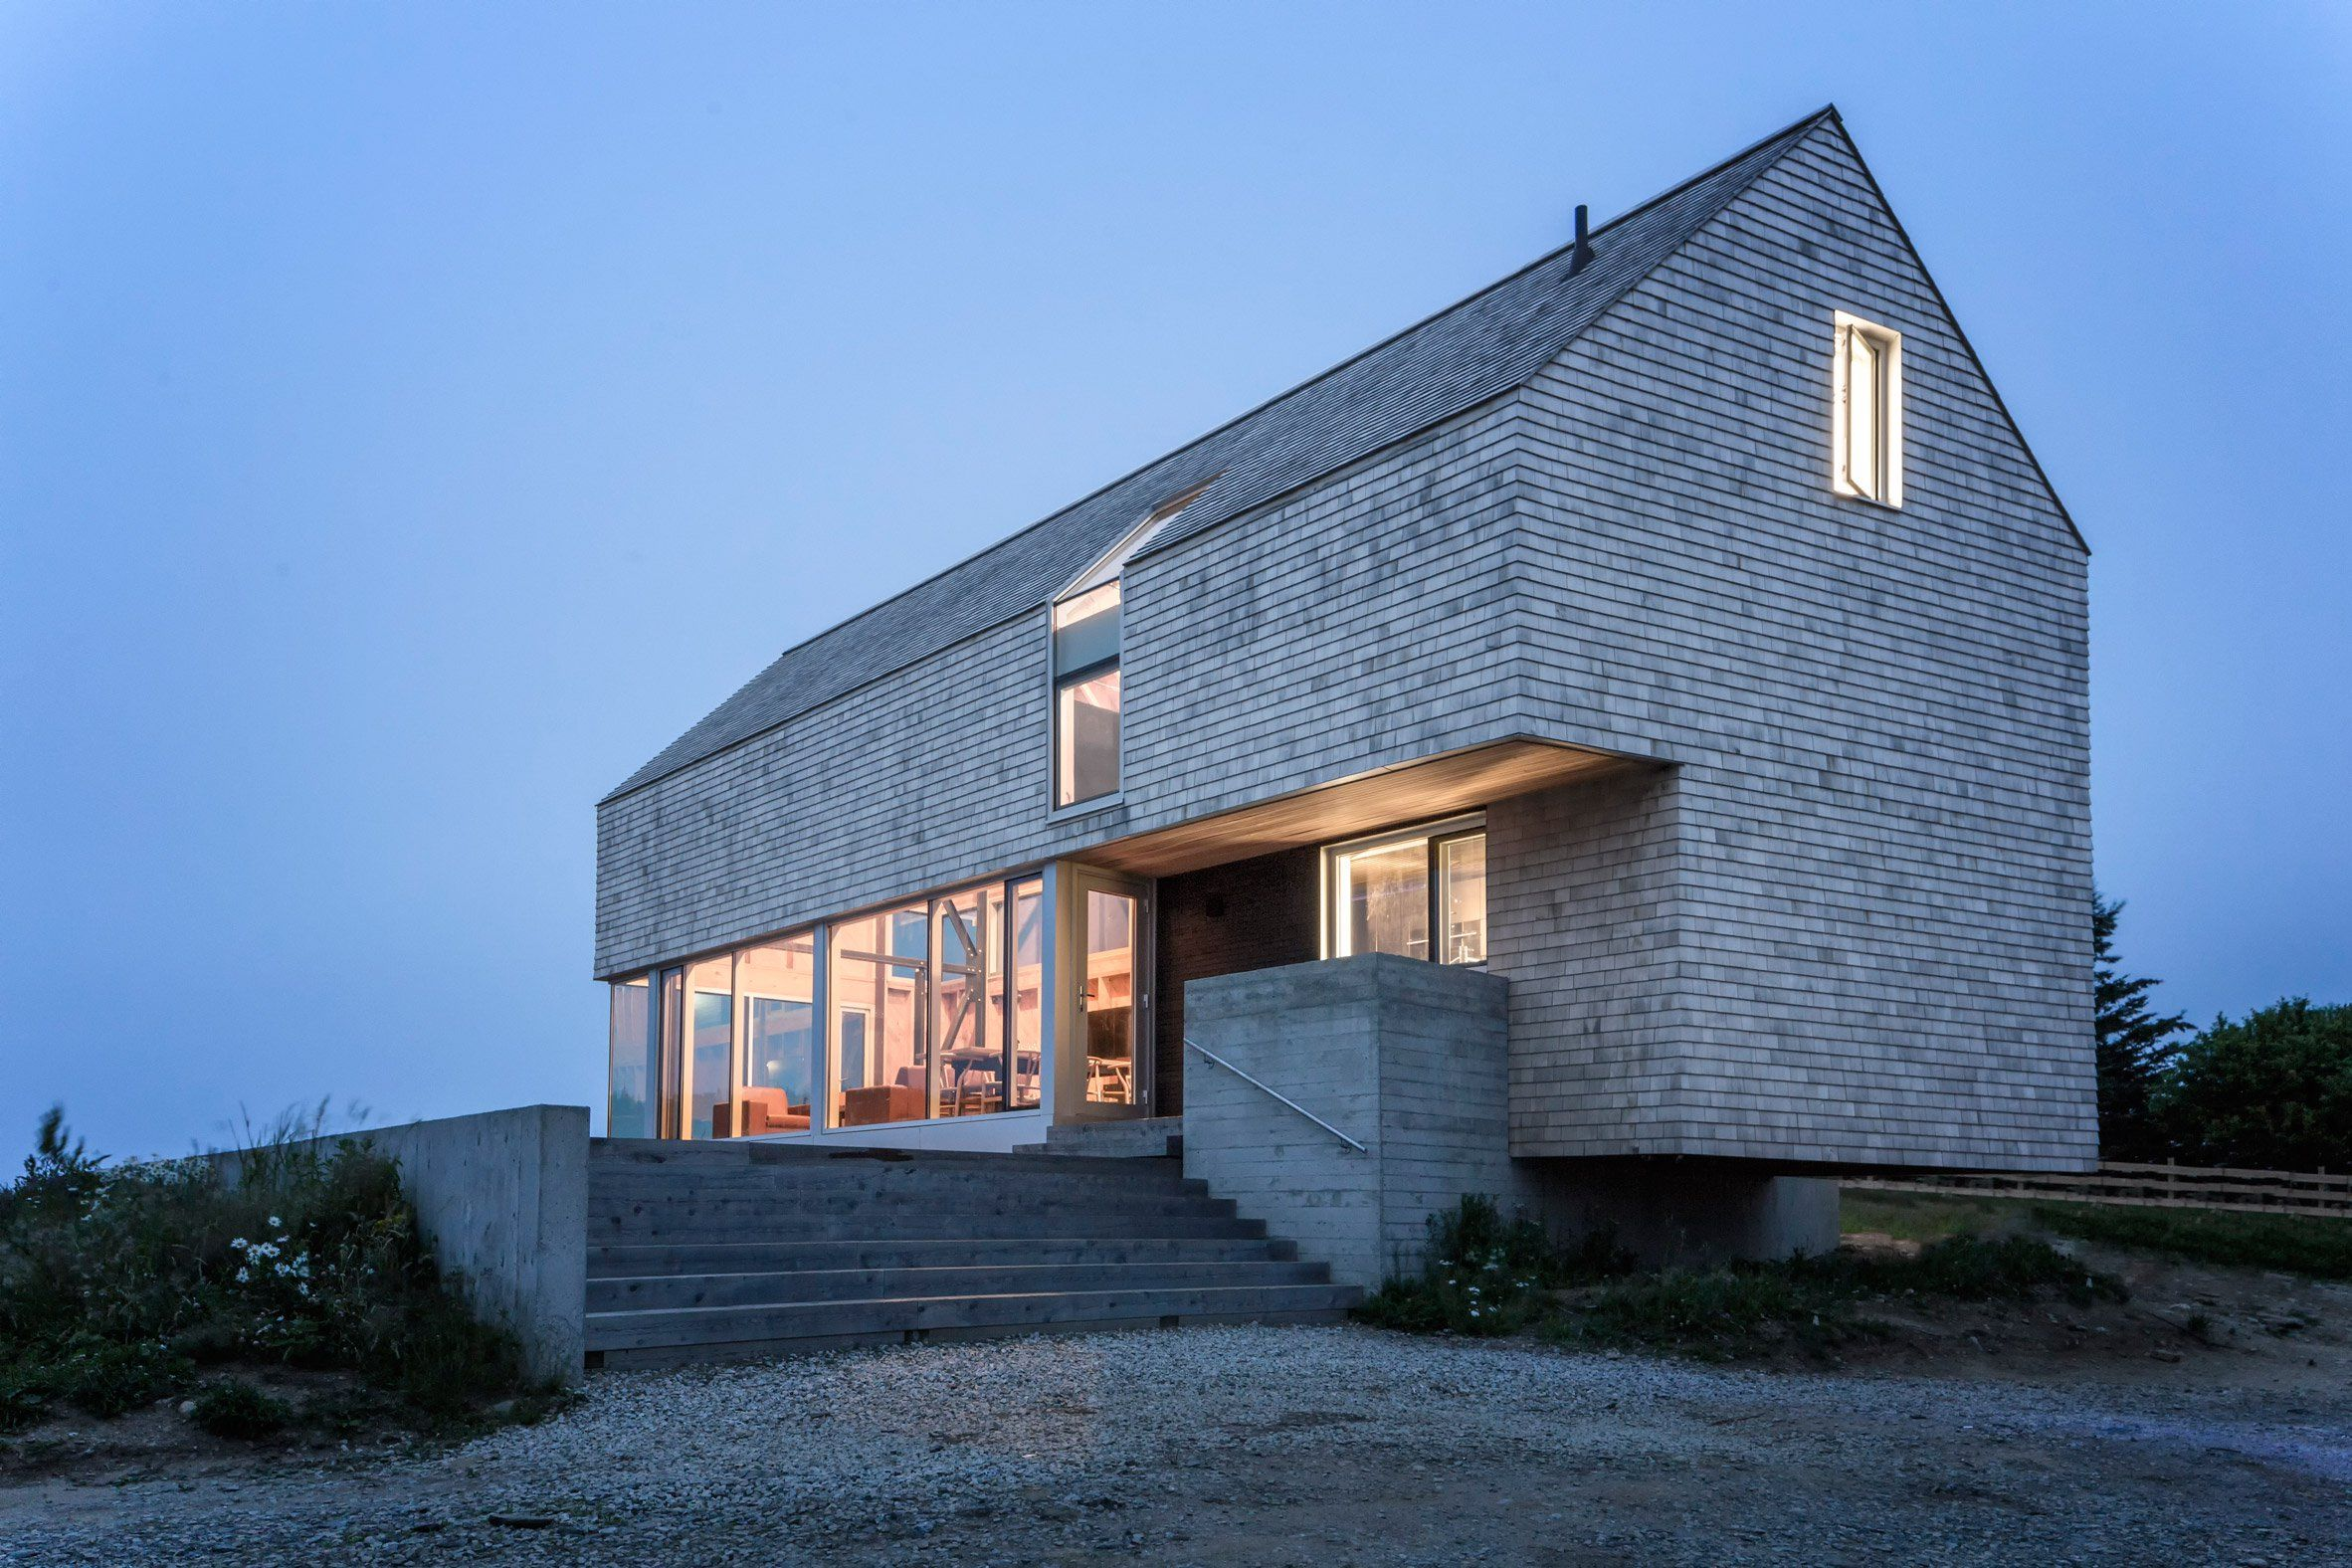 Farmhouse Architecture Features Mackay Lyons Sweetapple Has Completed A Coastal Dwelling